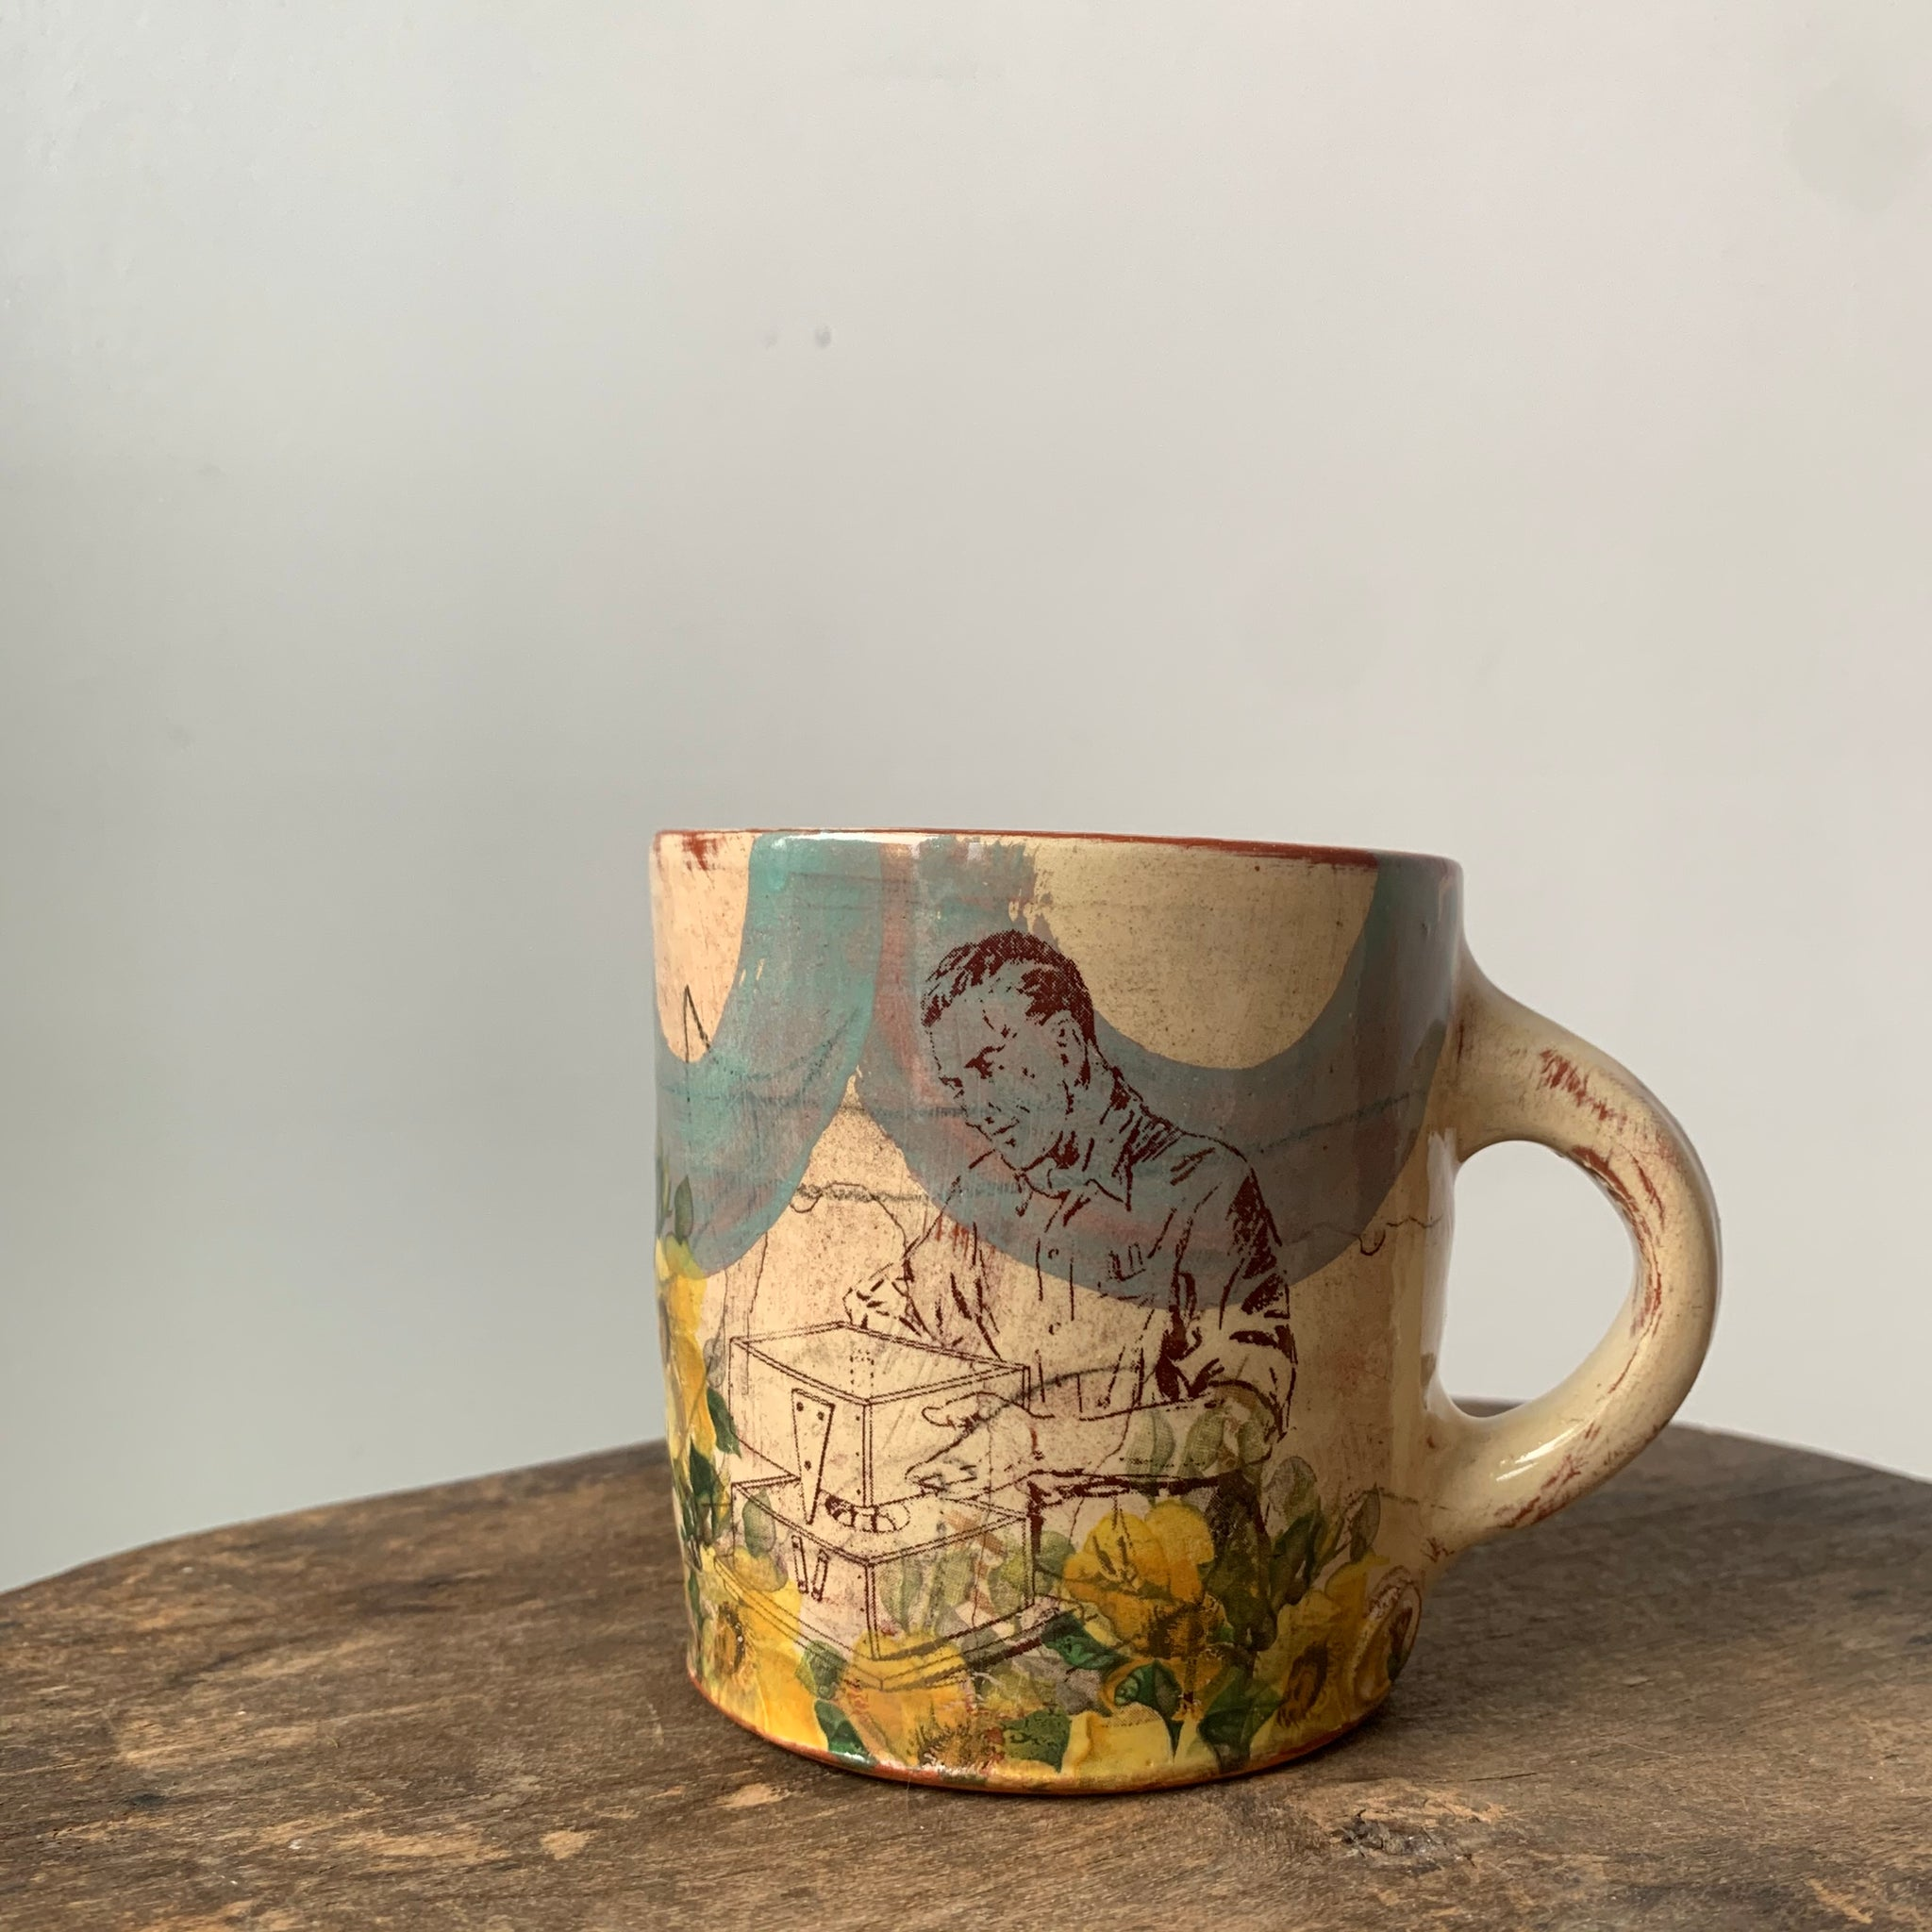 Small Mug 3 by Eric Pardue